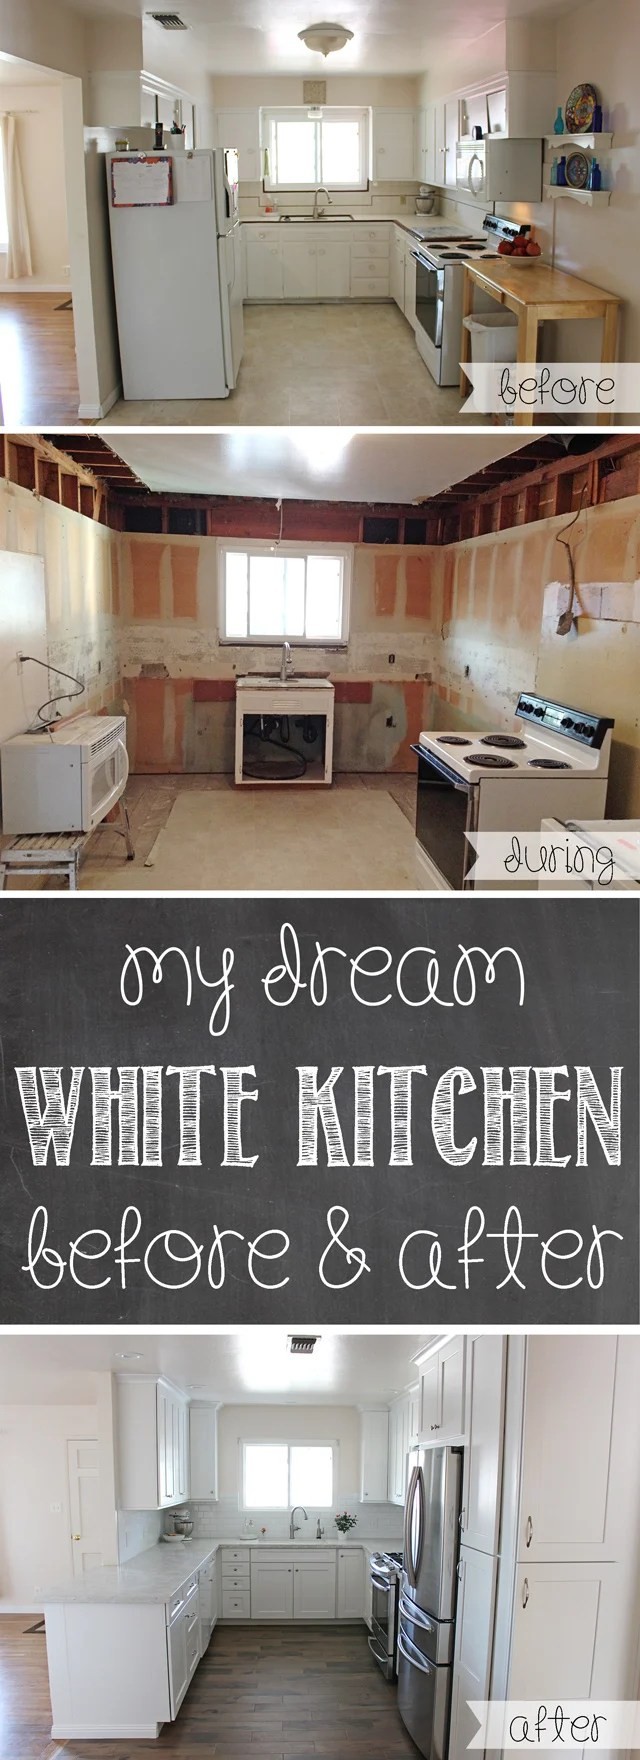 my dream white kitchen kitchen remodeling cost GORGEOUS Kitchen Remodel Lots of before and after photos tips for remodeling cost